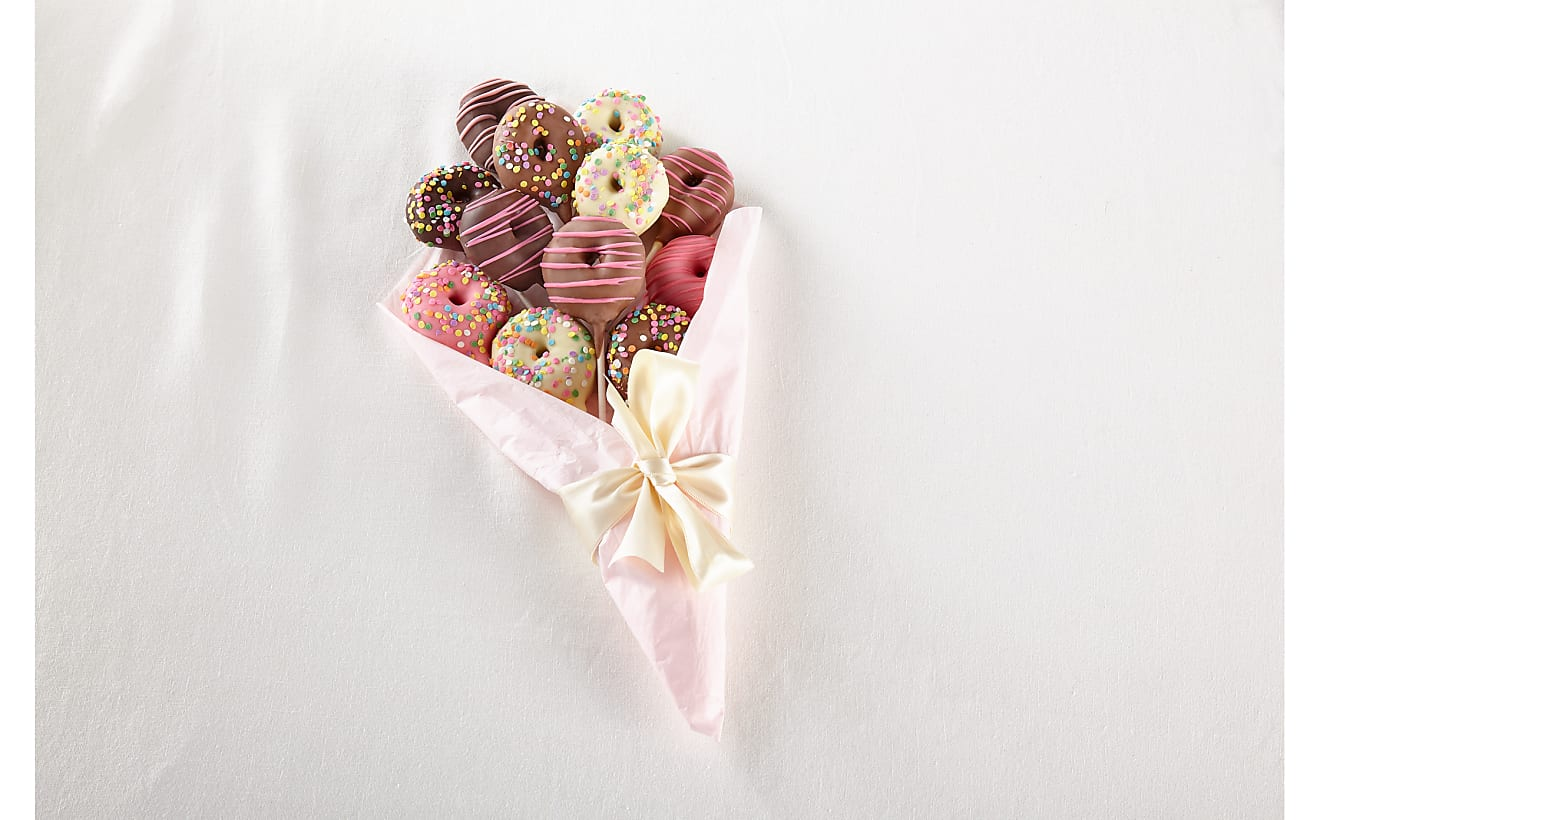 Donut Pops - Image 1 Of 2